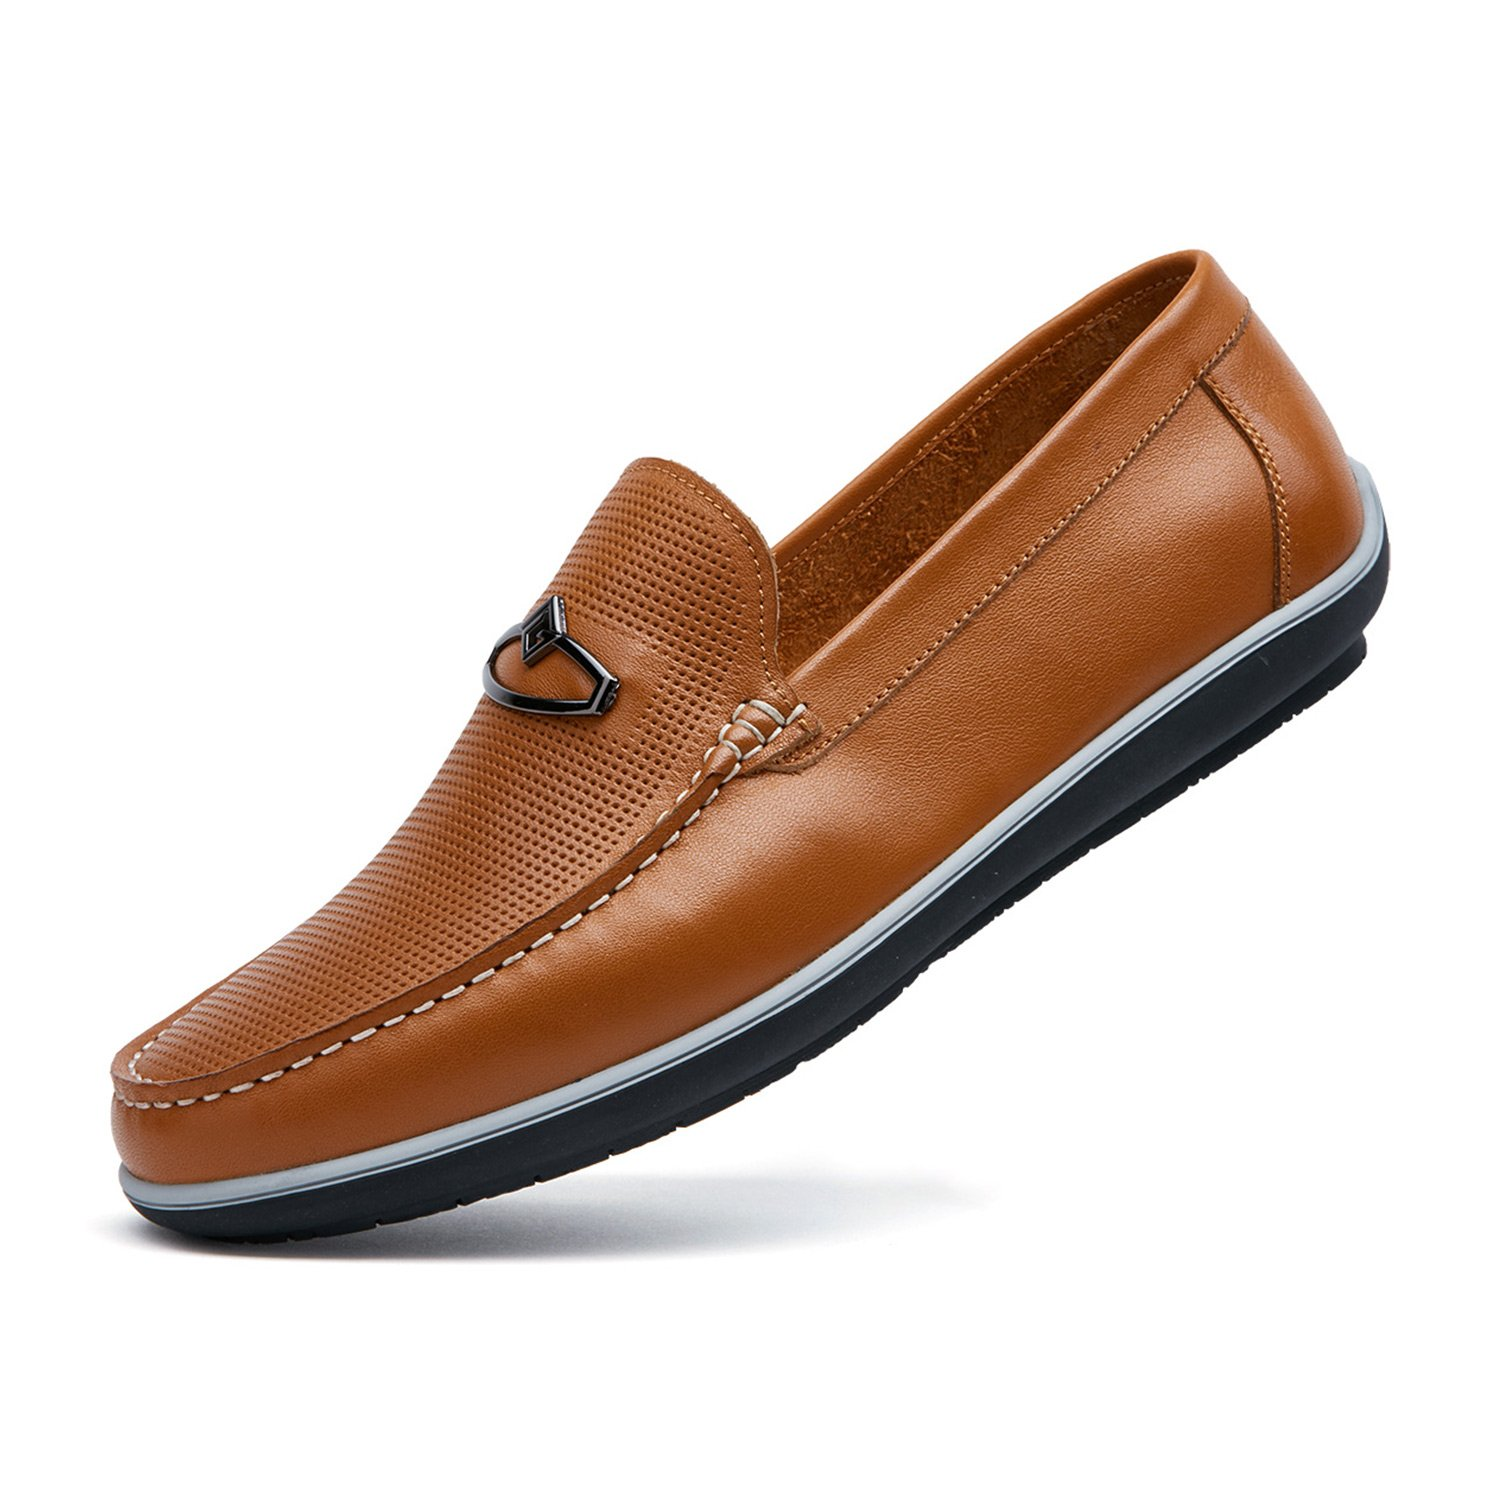 ZRO Men's Fashion Buckle Casual Loafers Summer Shoes Breathable Brown US 6